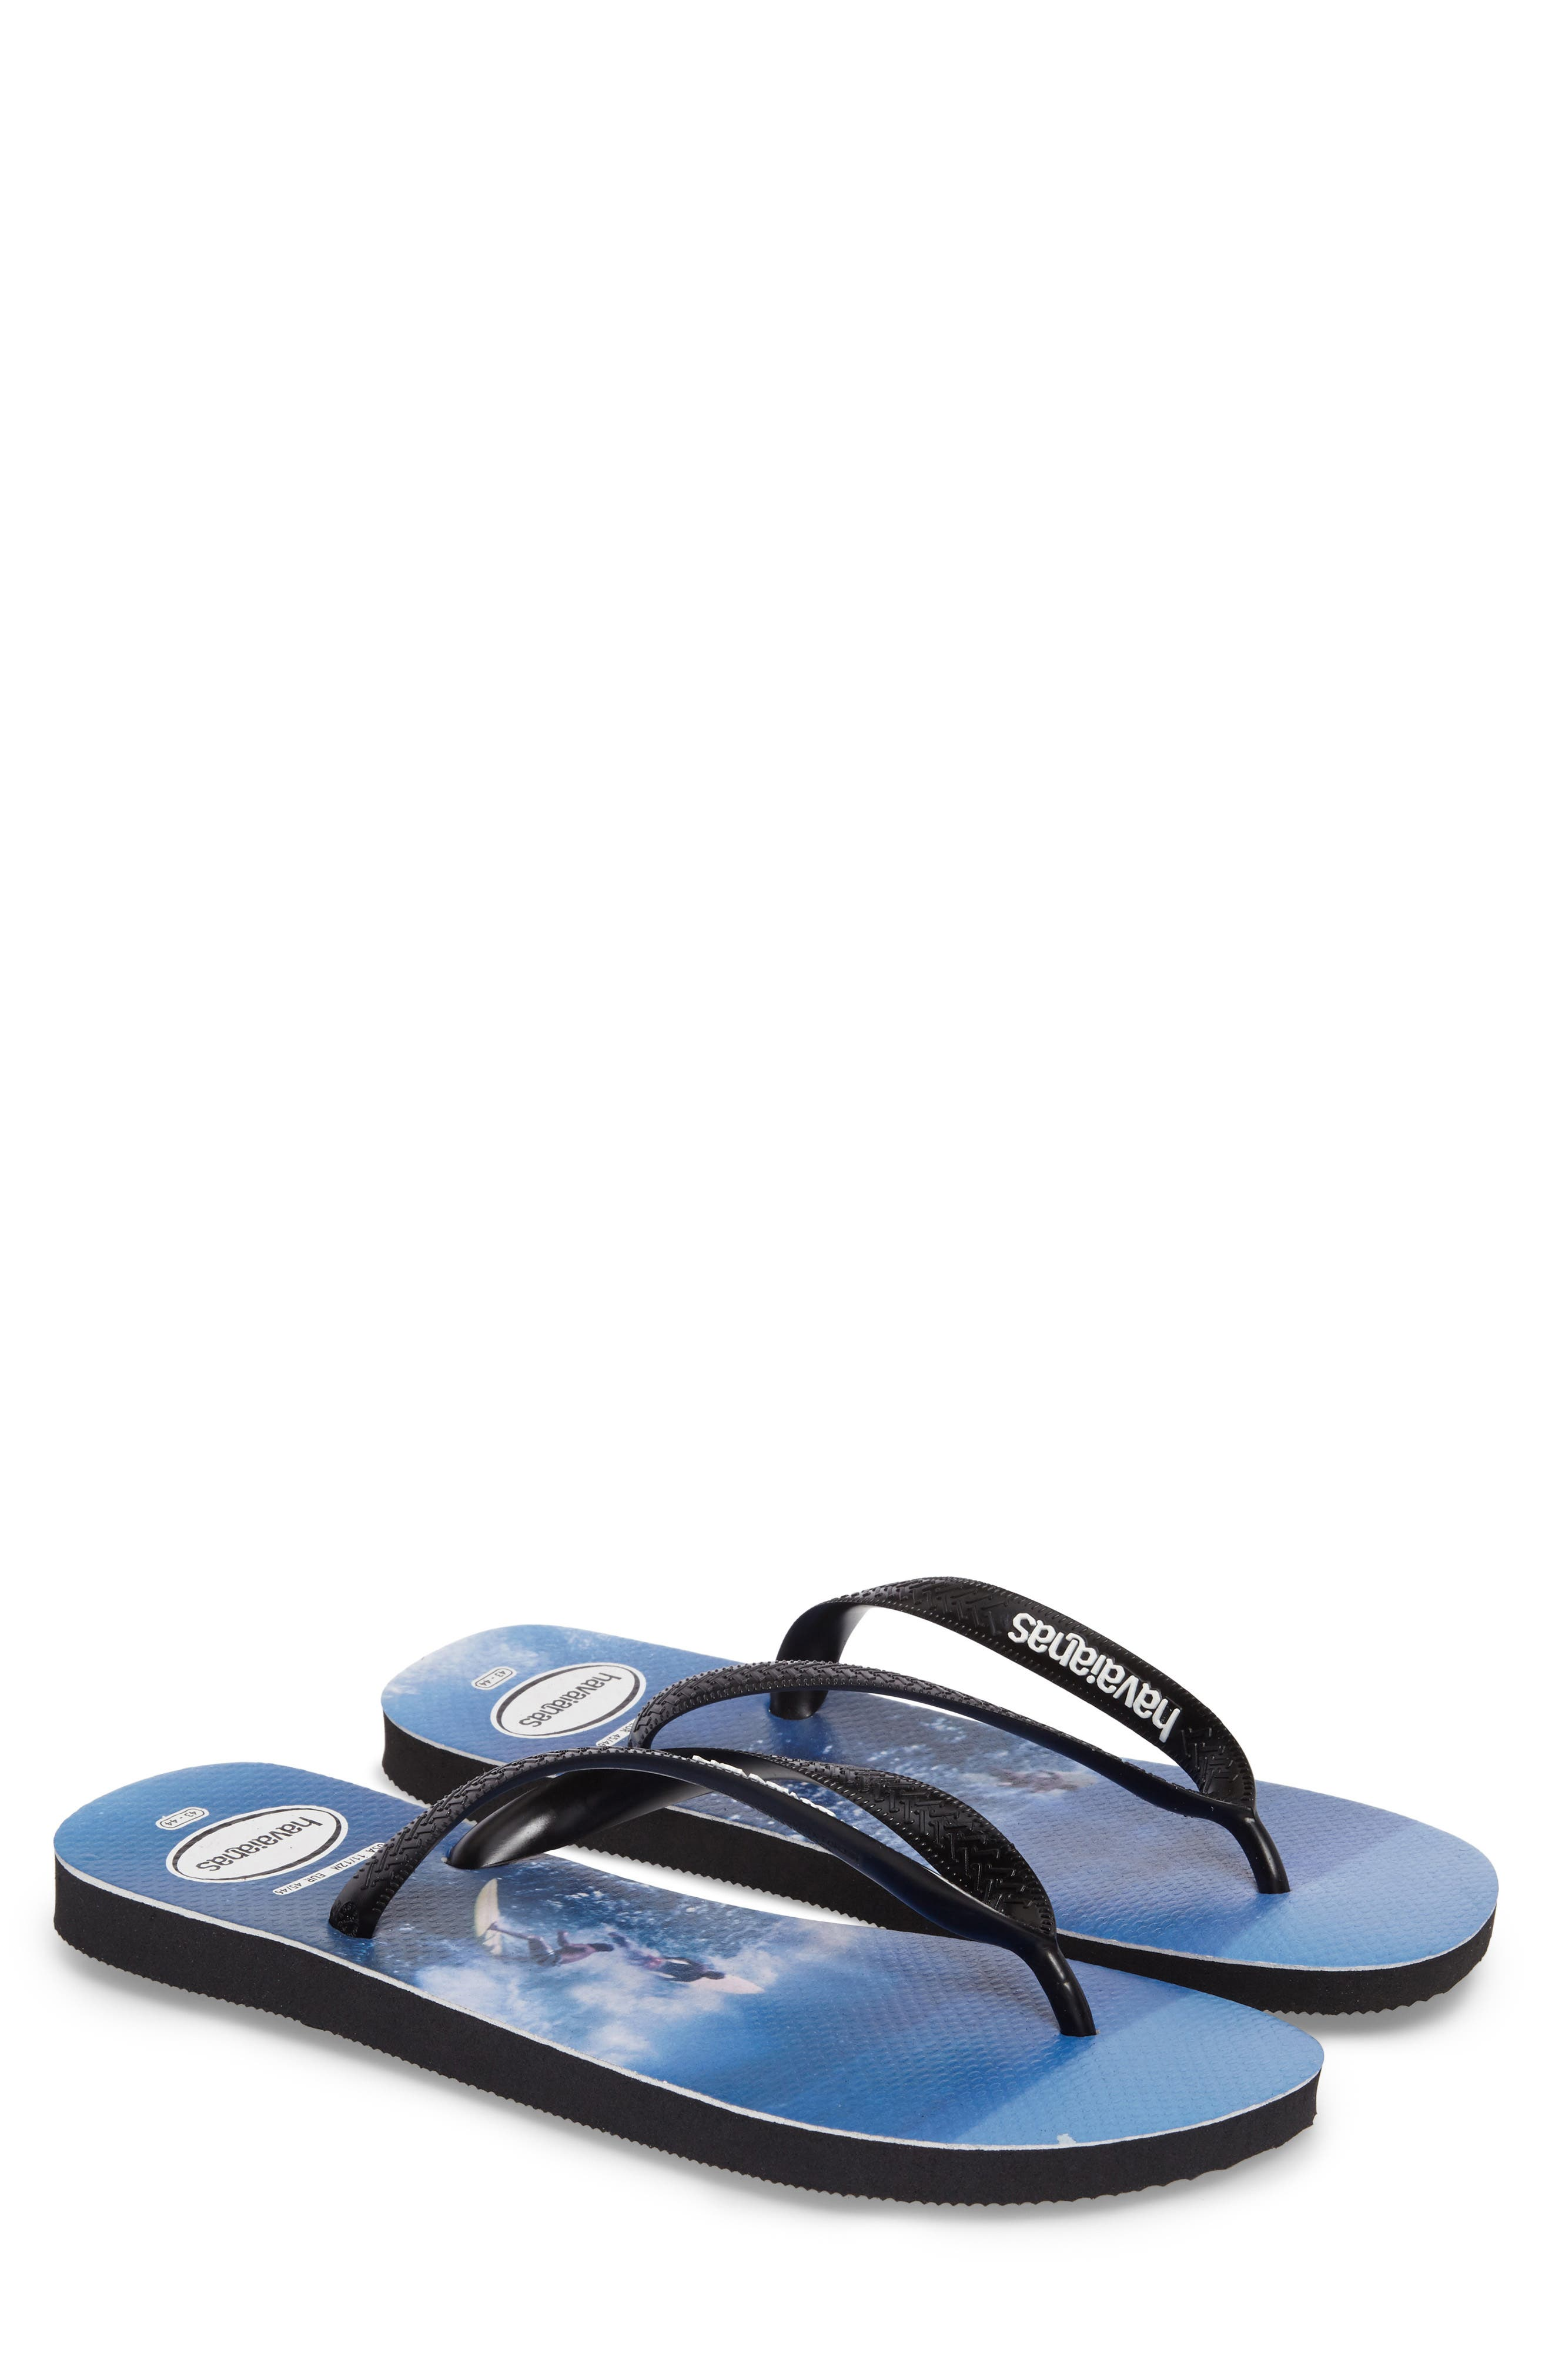 Alternate Image 1 Selected - Havaianas Top Photo Print Flip Flop (Men)